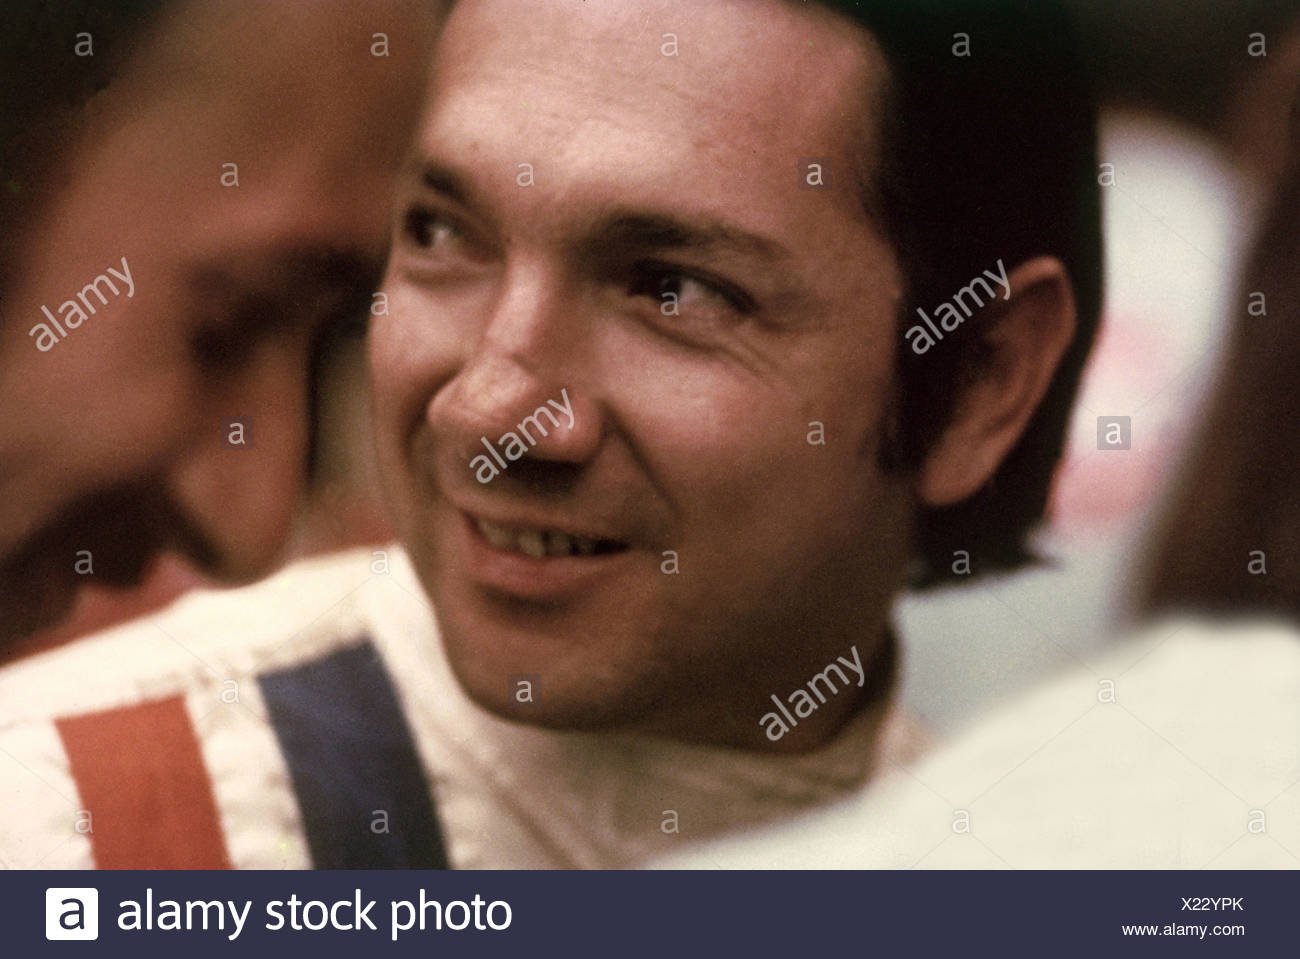 Rodriguez, Pedro, 18.1.1940 - 11.7.1971, Mexican athlete, ( automobile racer), portrait, motor-racing circuit, Monza, 1970, Additional-Rights-Clearances-NA - Stock Image